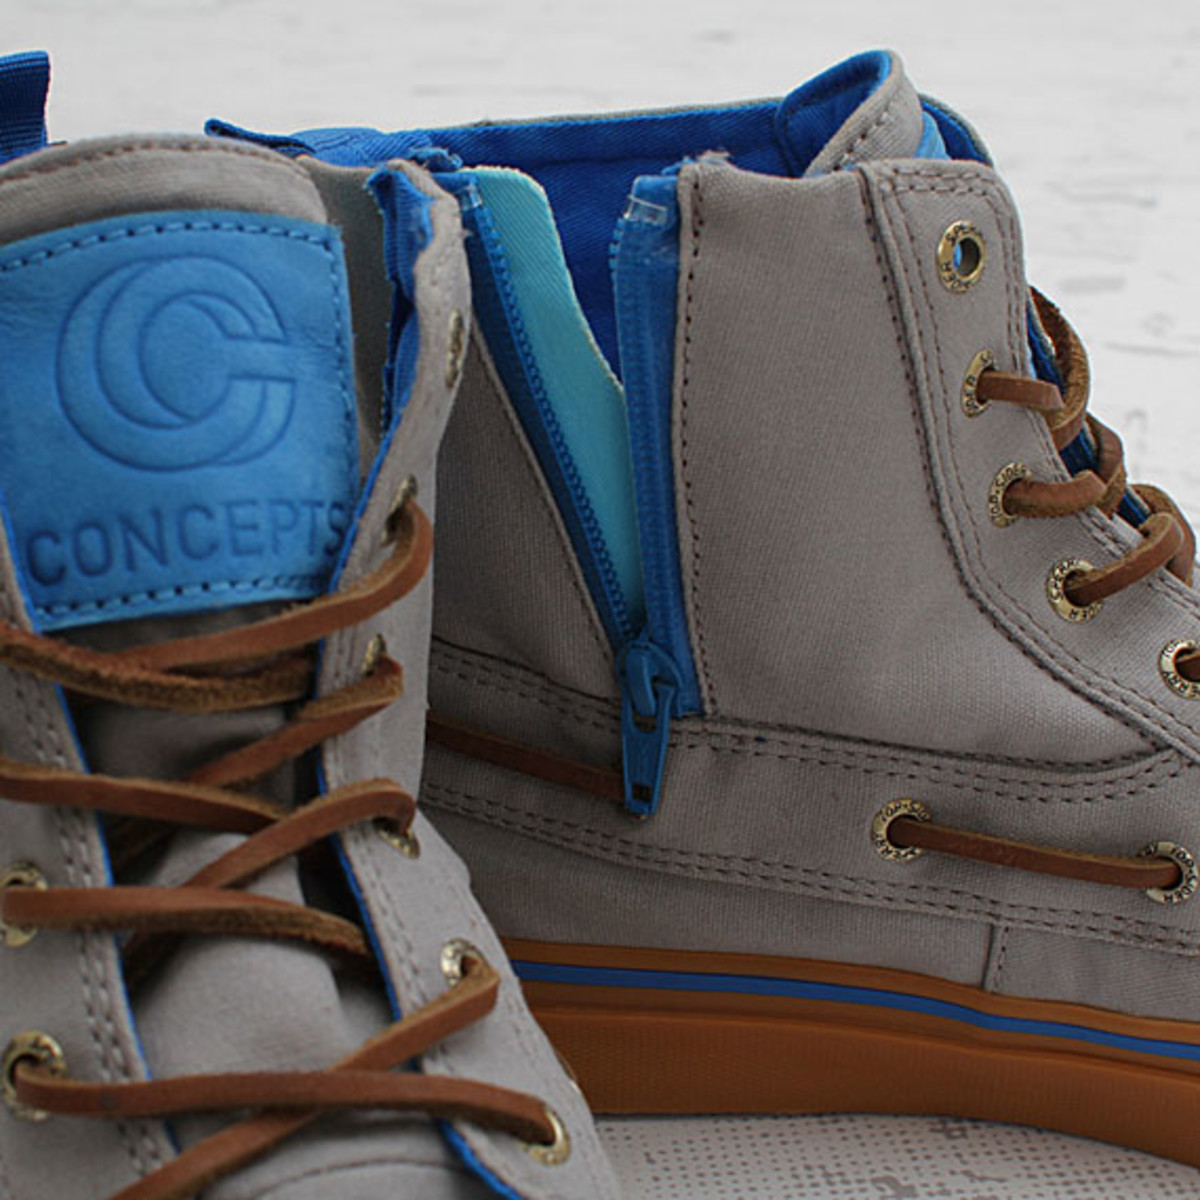 concepts-sperry-top-sider-bahama-boot-fall-2012-07